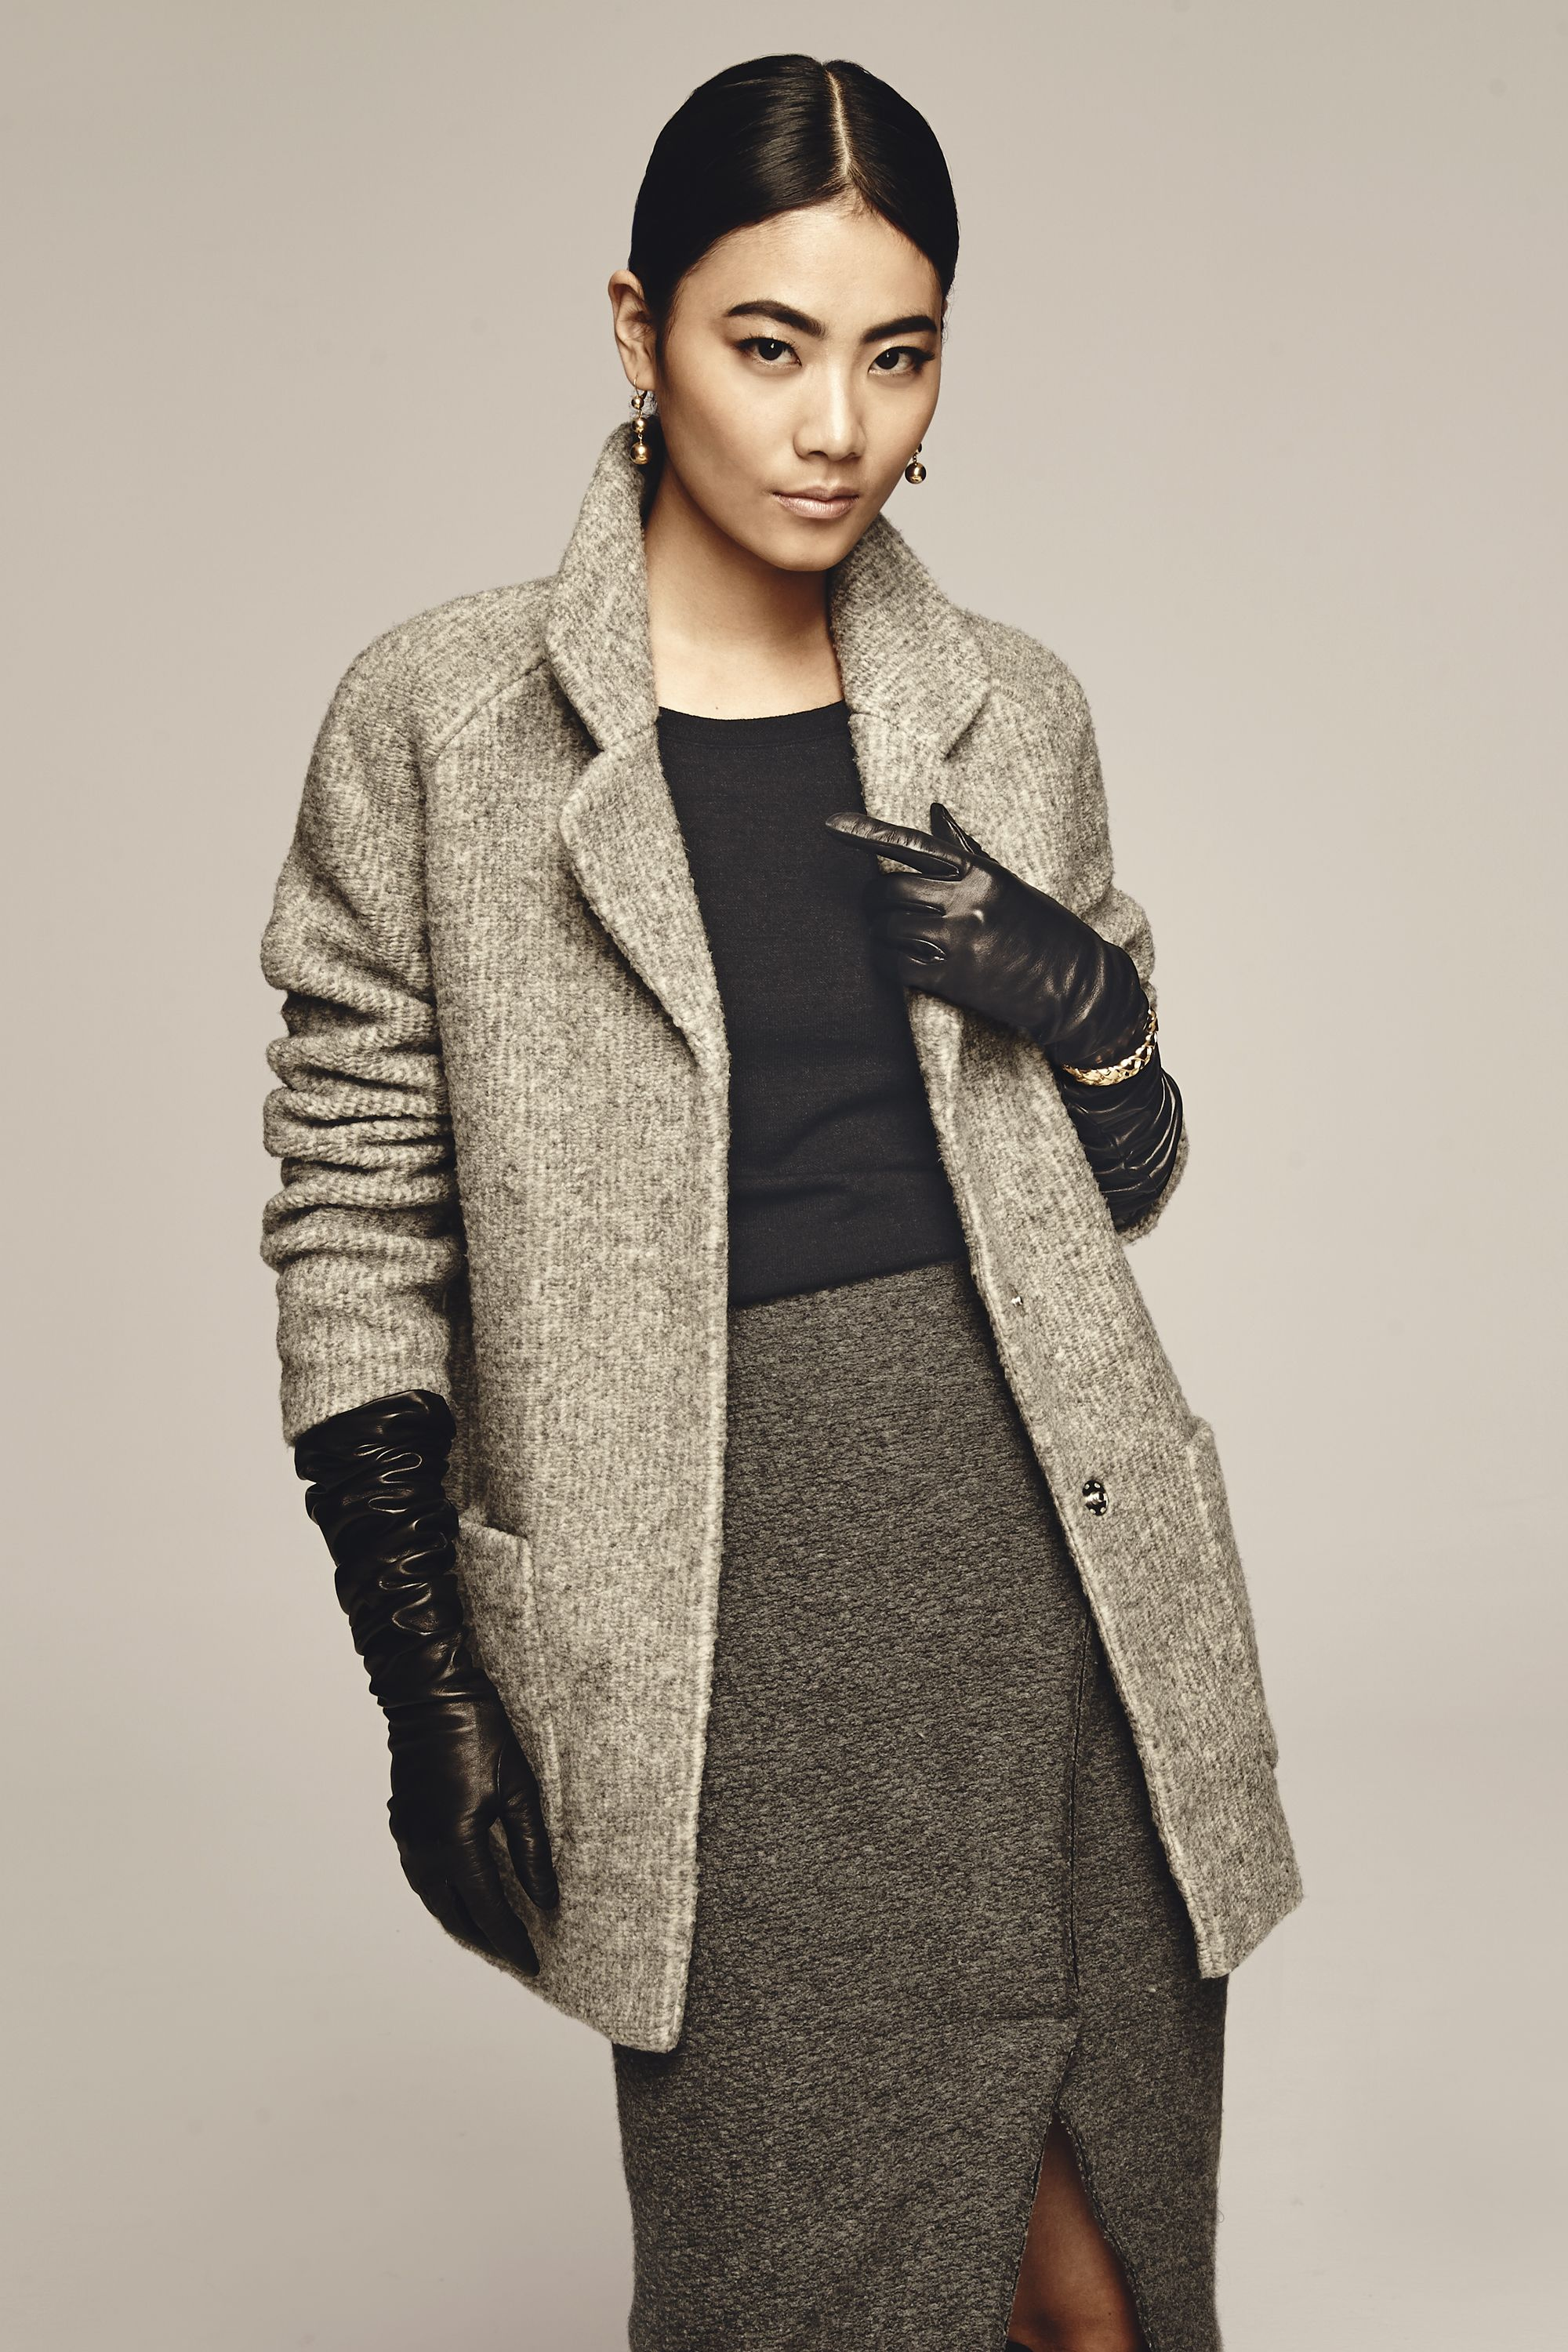 """<p><em></em> </p><p>Fake shorter sleeves by scrunching them up to the elbows, then slip on a pair of striking leather gloves to pick up the slack. Weather permitting, you can skip buttoning up and show off your indoor outfit. </p><p>Old Navy Textured Cocoon Coat, $75, <a href=""""http://oldnavy.gap.com/browse/category.do?cid=55474"""" target=""""_blank"""">oldnavy.com</a>; Old Navy Midi Sweater Dress (worn as a shirt), $40, <a href=""""https://ad.doubleclick.net/ddm/clk/296861937;123822730;o"""" target=""""_blank"""">oldnavy.com</a>; M.Martin Scalloped Wool Skirt, $395, <a href=""""http://mmartin.com/"""" target=""""_blank"""">mmartin.com</a>; Bloomingdale's Long Leather Gloves, $198, <a href=""""http://www1.bloomingdales.com/shop/product/bloomingdales-12-button-length-long-leather-gloves?ID=1112116&pla_country=US&cm_mmc=Google-PLA-ADC-_-Jewelry%20%26%20Accessories-NA-_-Bloomingdale%27s-_-886329823991USA&catargetid=120156070000286163&cadevice=c"""" target=""""_blank"""">bloomingdales.com</a>; Cé<span class=""""redactor-invisible-space"""">line Dot Straight Earrings, $425, <a href=""""http://www.celine.com"""" target=""""_blank"""">celine.com</a>; Jennifer Fisher Brass Medium Braid Cuff, $695, <a href=""""http://WWW.JENNIFERFISHERJEWELRY.COM"""" target=""""_blank"""">jenniferfisherjewelry.com</a></span></p>"""